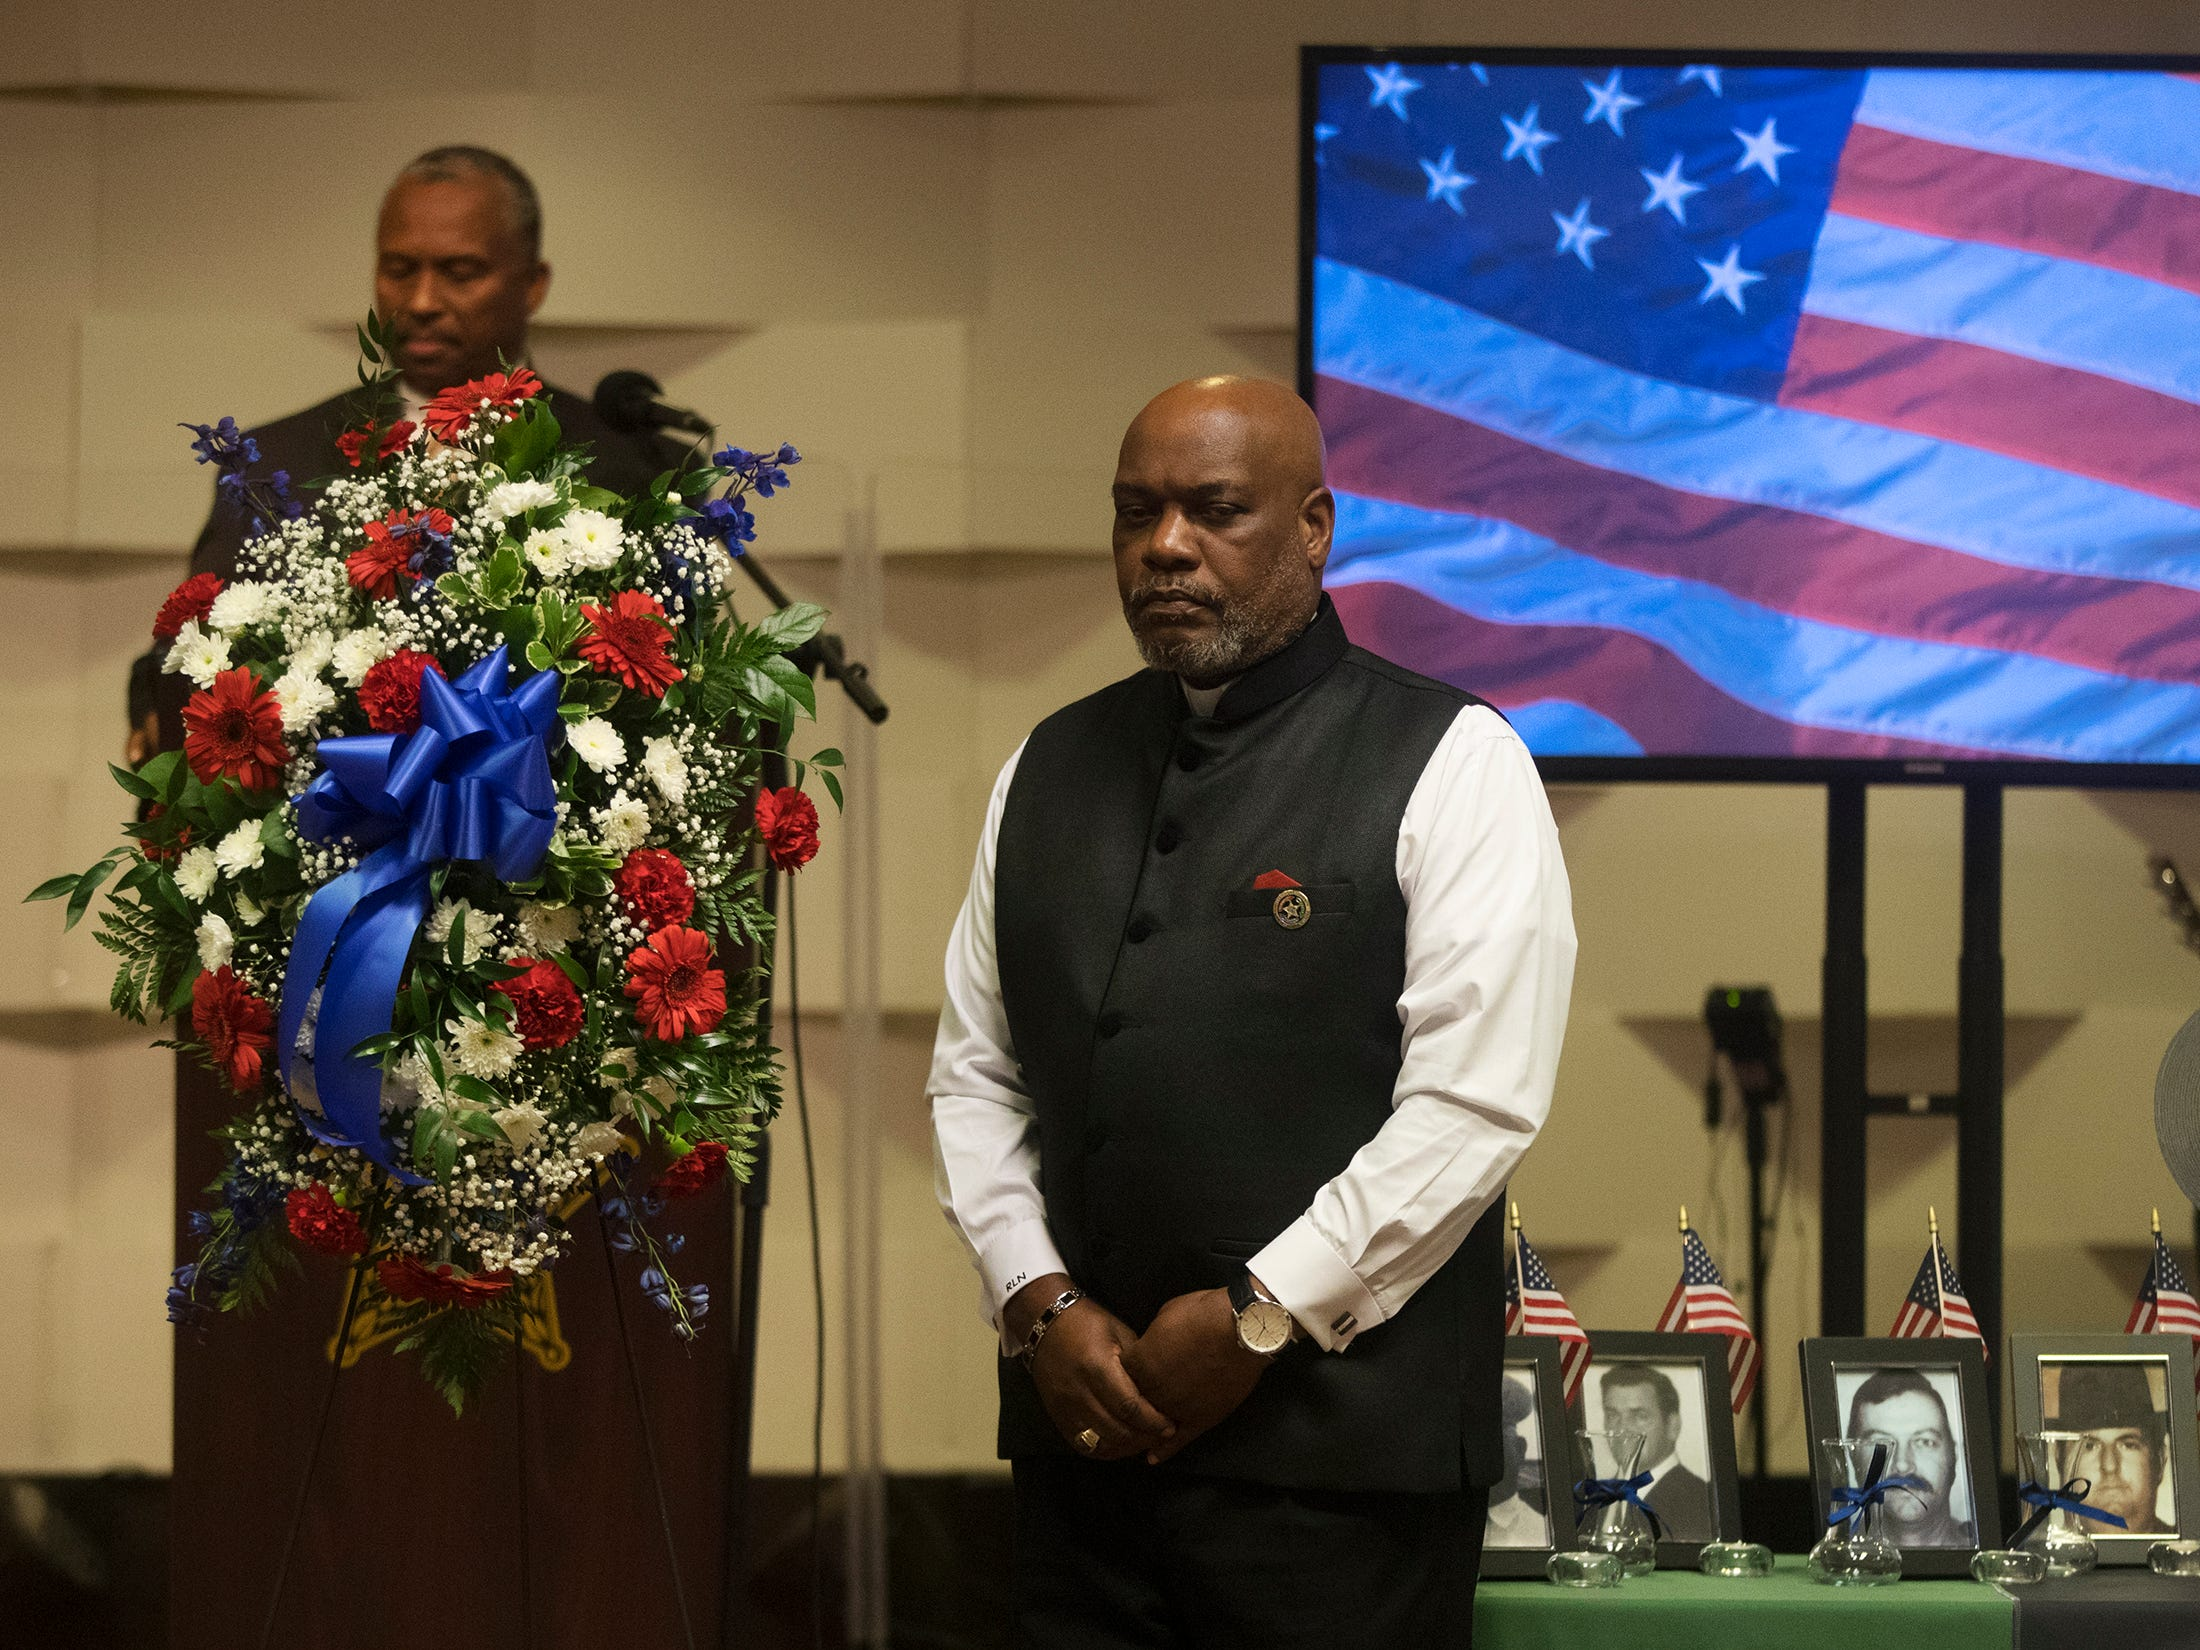 Members of the Collier County NAACP were among those honoring local law enforcement officers killed in the line of duty at a memorial on Wednesday at East Naples United Methodist Church. Thirteen officers have been killed in Collier County since 1928.